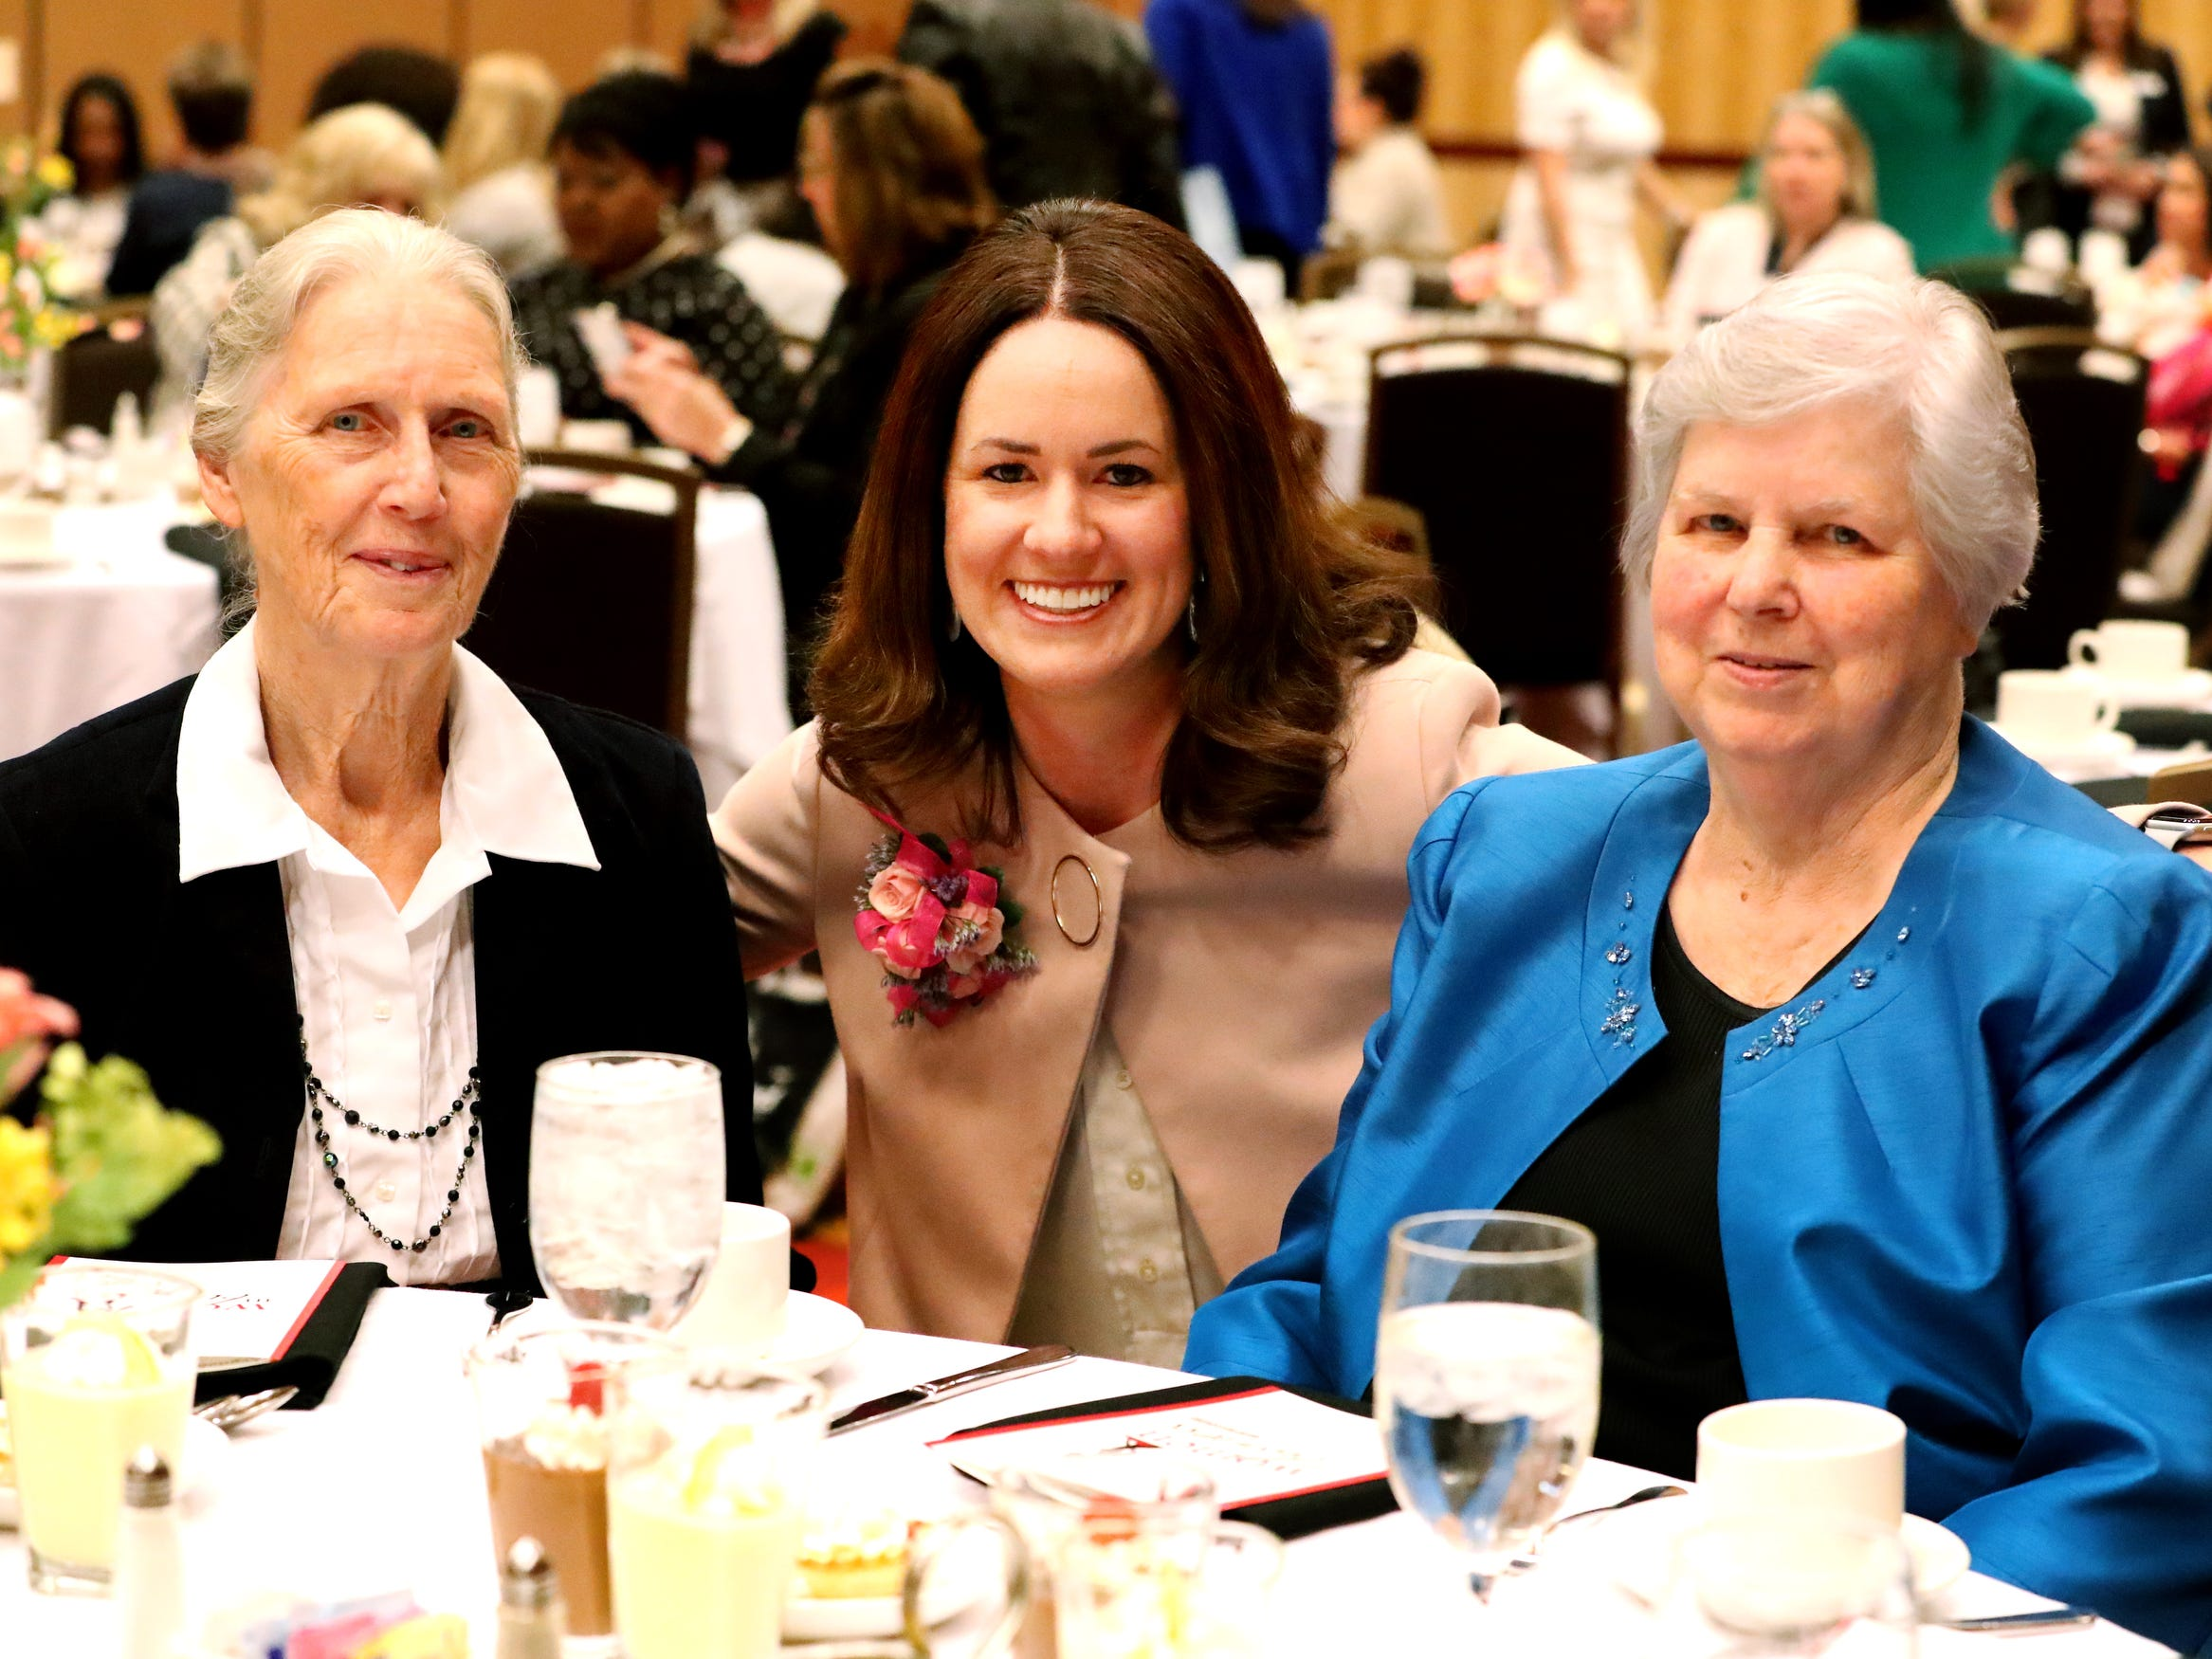 Megan Bynum, certified Financial Planner , center between her grandmother's Clara Jacobs, left and Reba Sanders, right, at Murfreesboro Magazine's 2019 Women in Business Luncheon on Tuesday, March 12, 2019, at the Embassy Suites Murfreesboro.